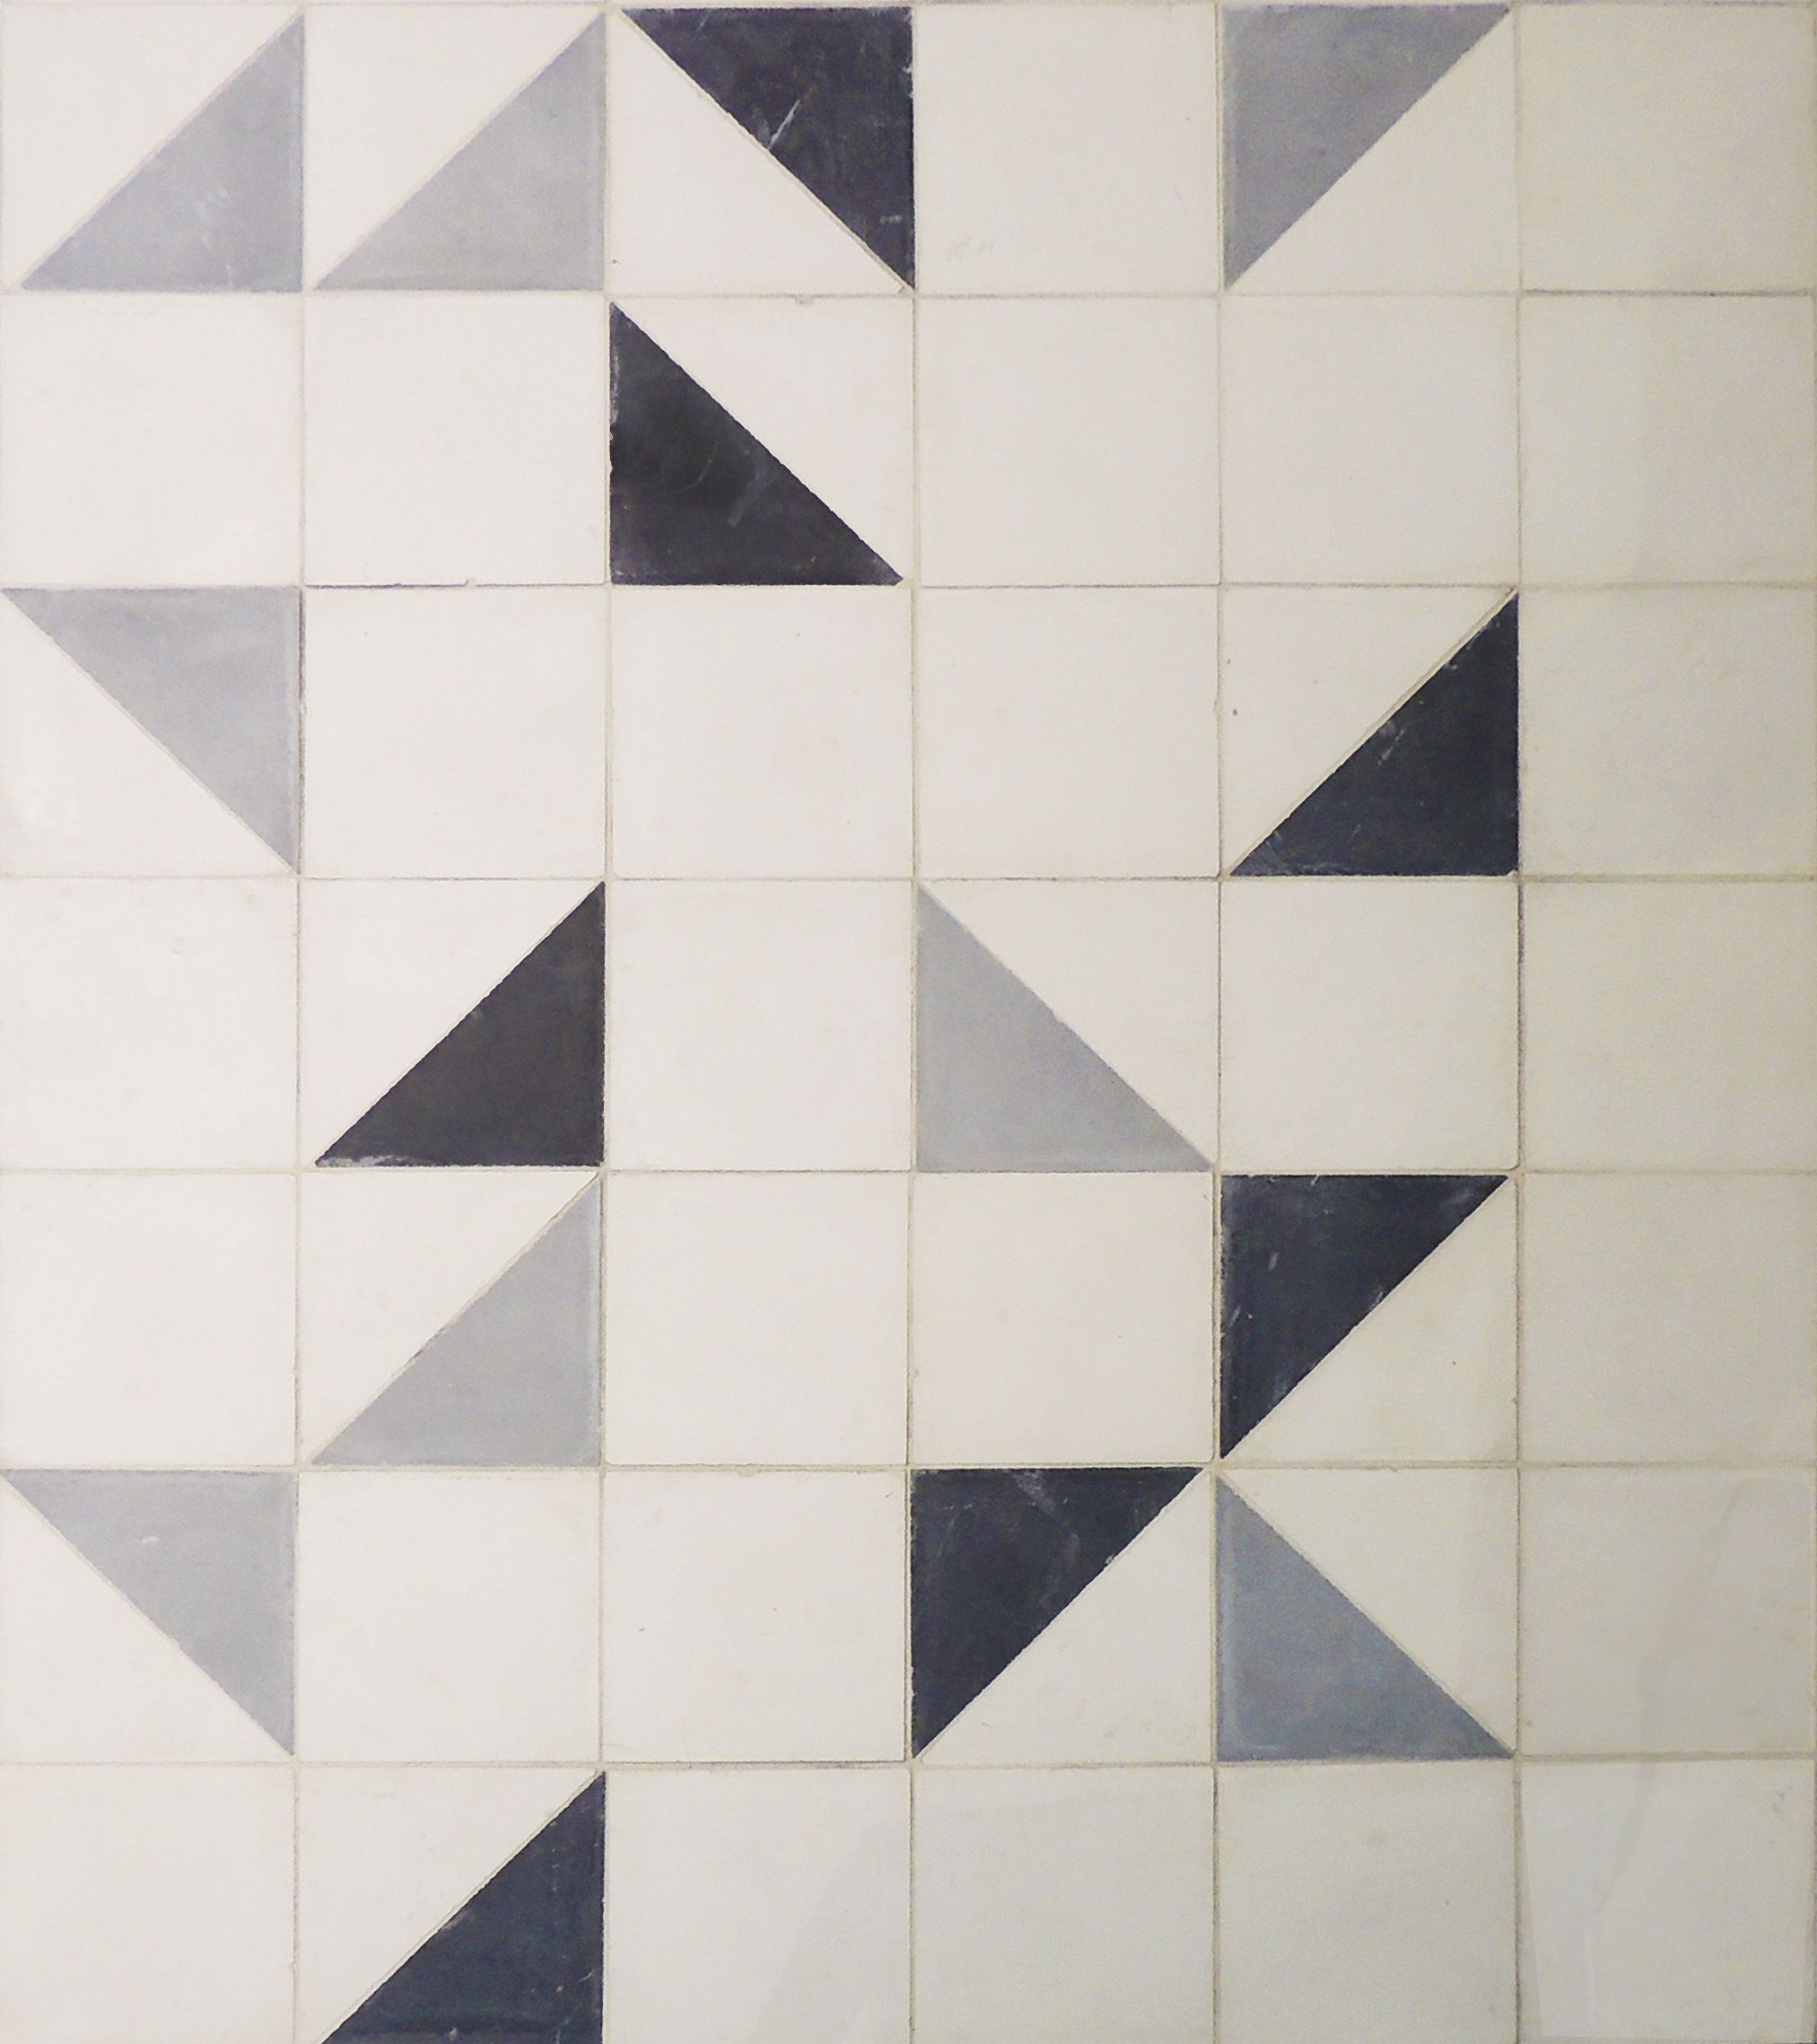 Geometric Floor Strada Cement Tiles In Black Oxford White